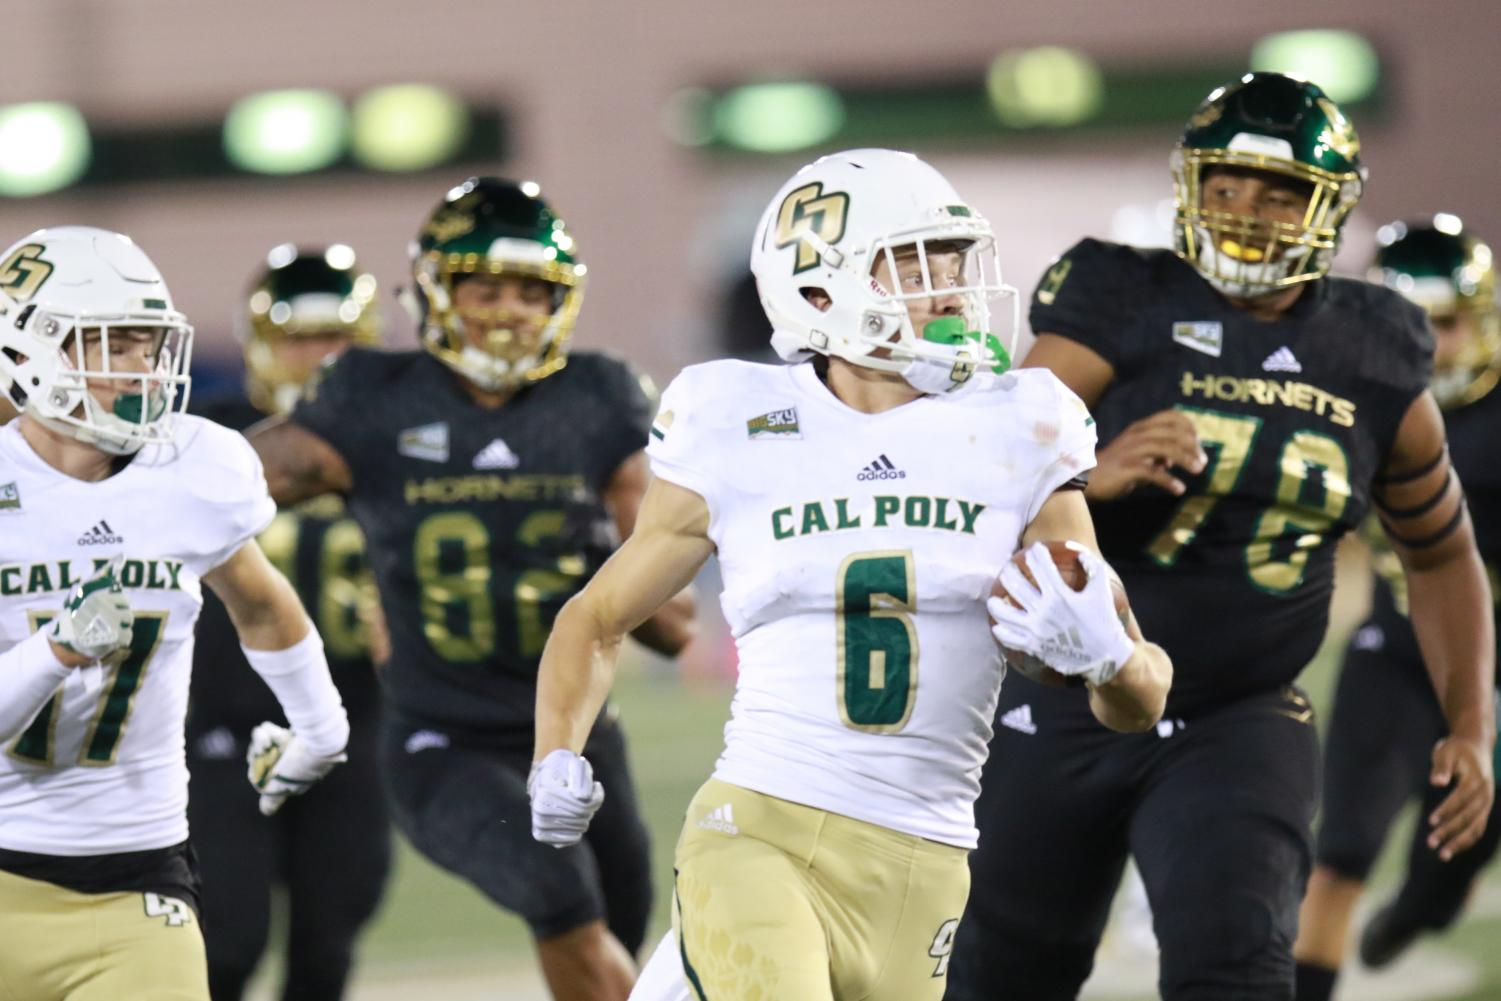 Cal Poly junior J.J. Koski returned a punt for a touchdown in the second quarter to give the Mustangs a 21-14 lead on Saturday at Hornet Stadium. The Mustangs defeated Sac State 41-27.